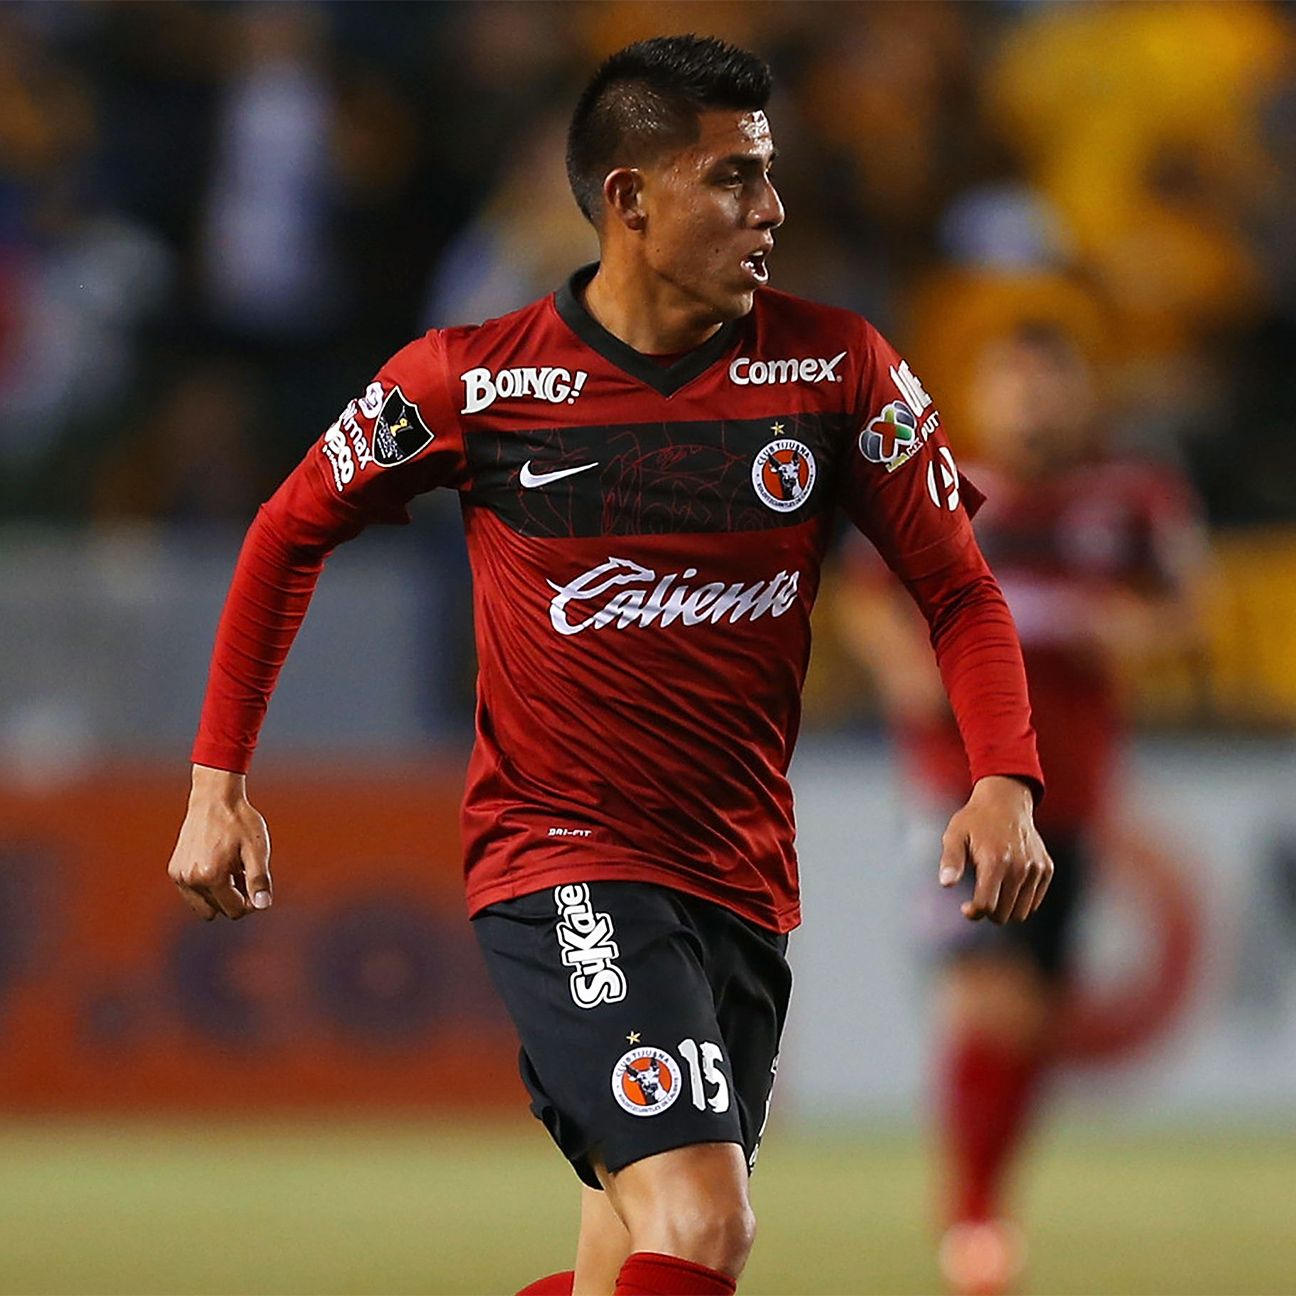 Joe Corona is working his way back into the mix at Club Tijuana, which should only help his national team prospects.